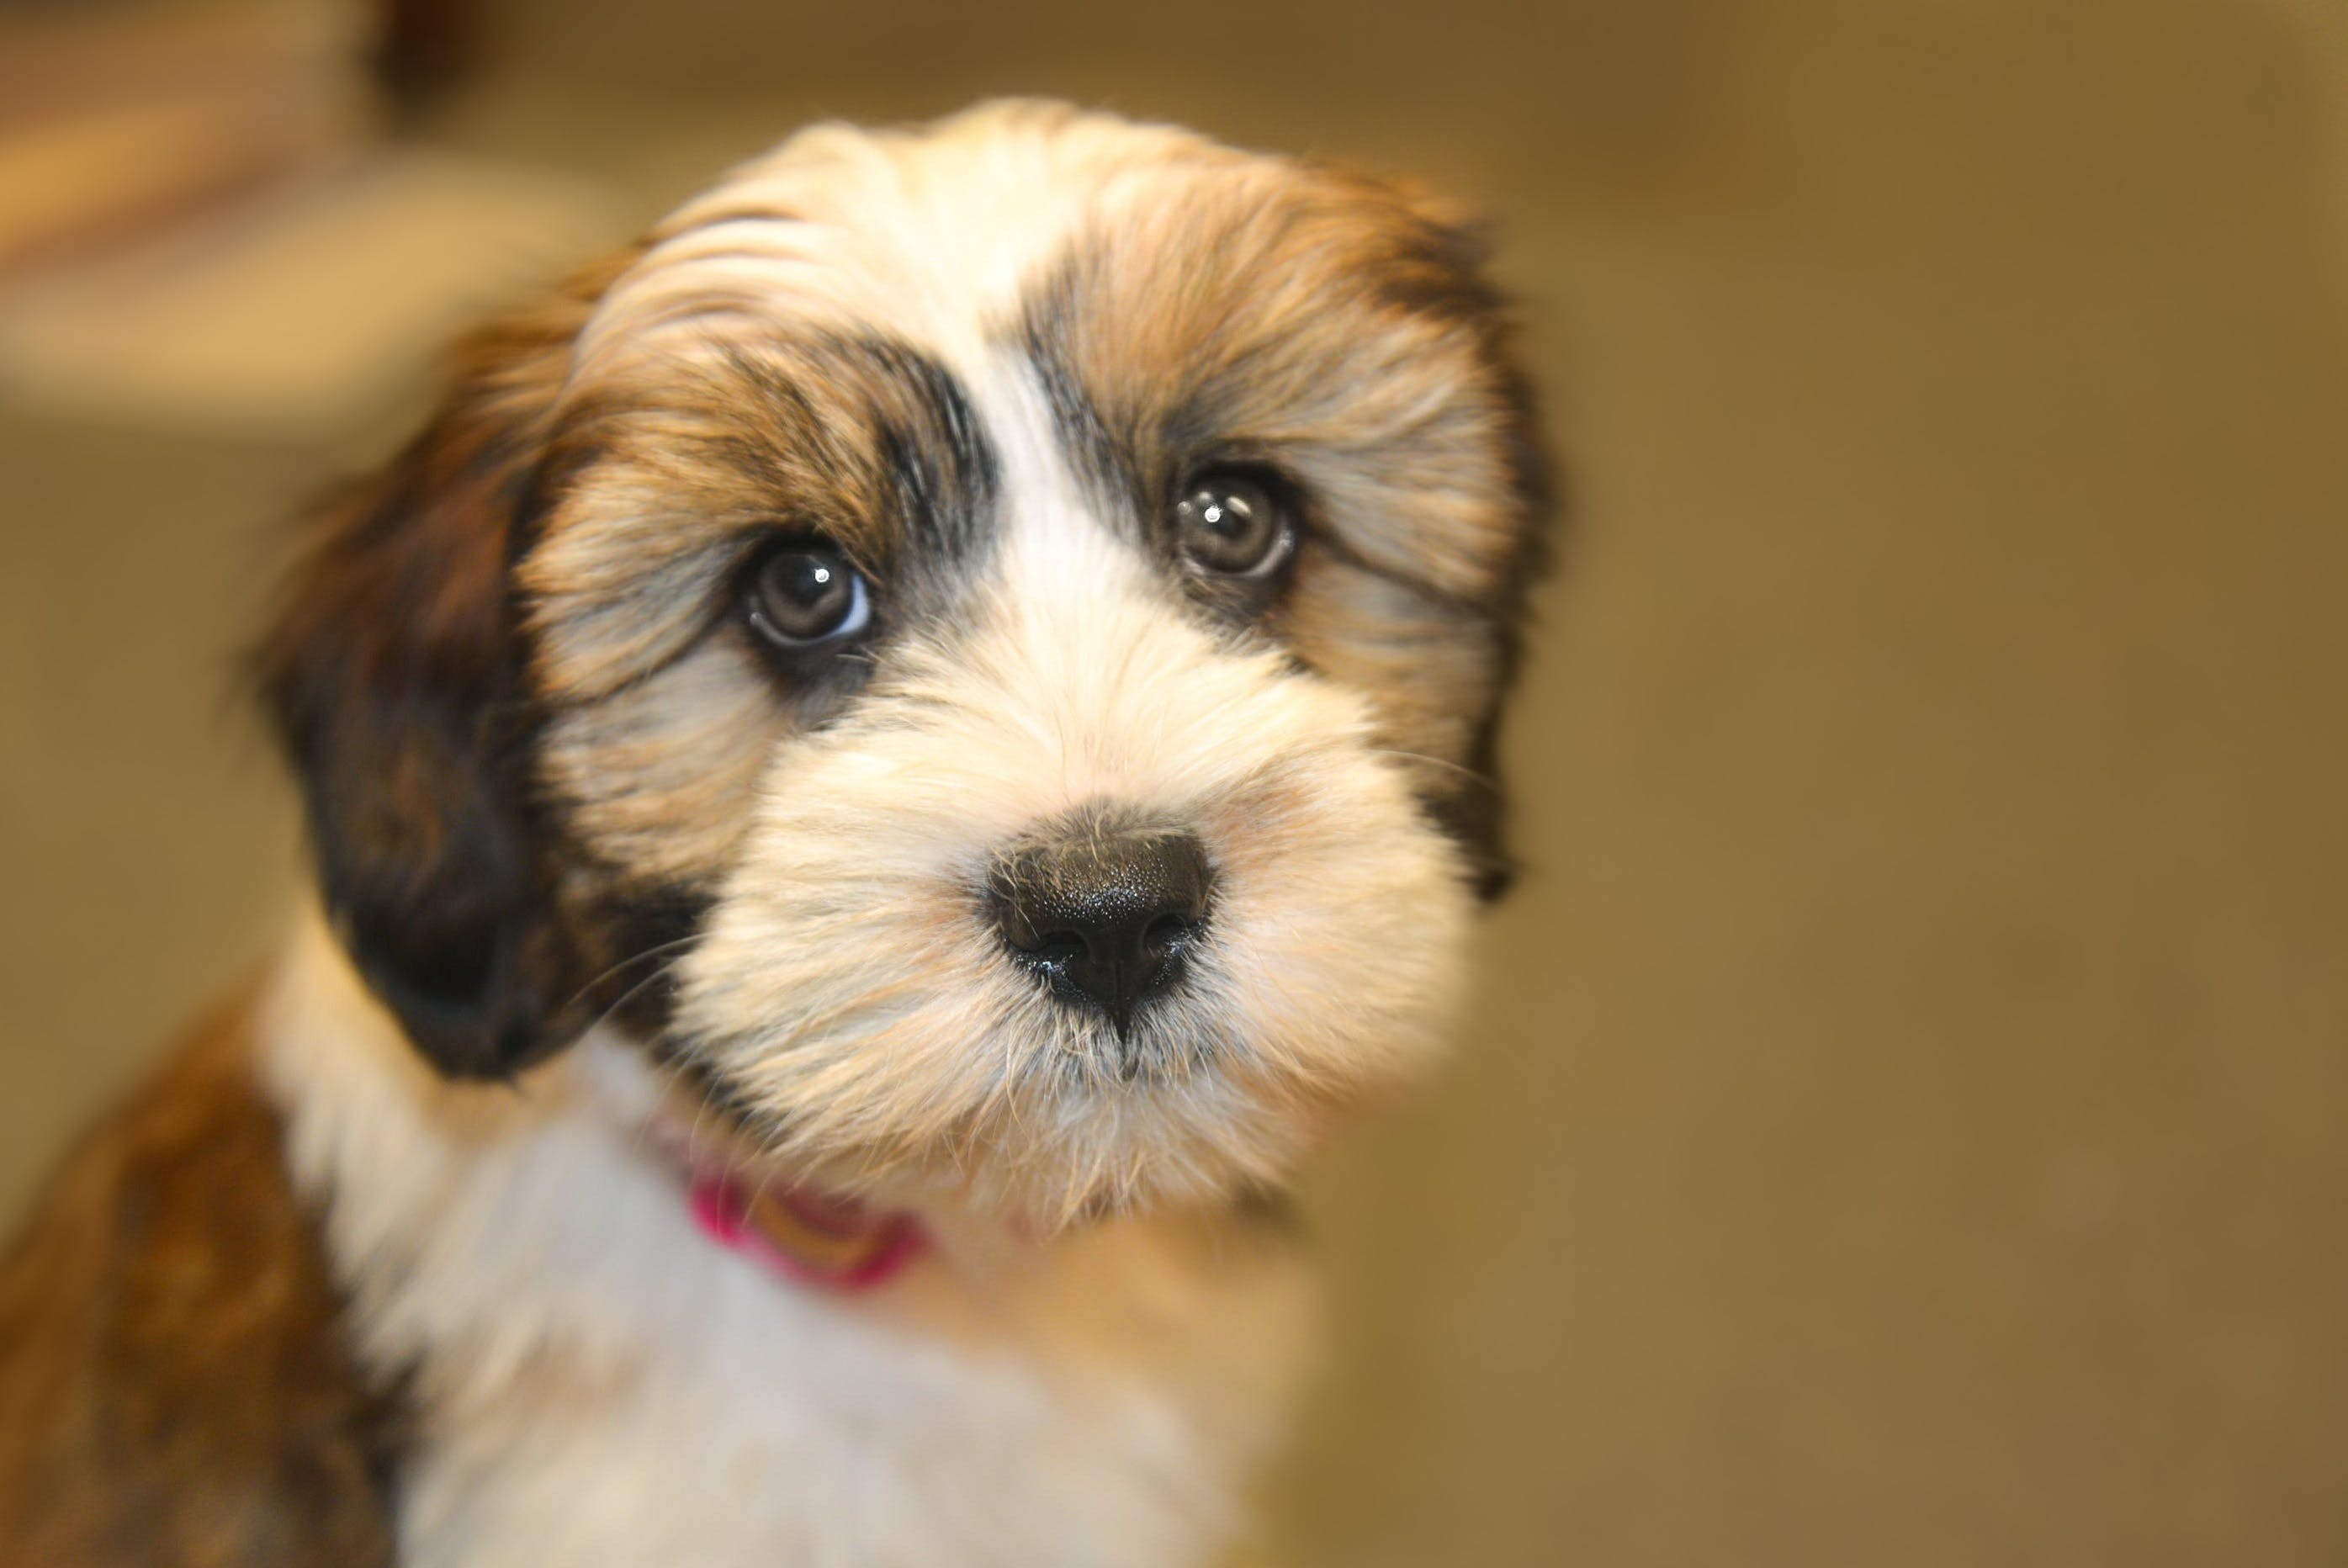 Close Up Photo of Shih Tzu Puppy